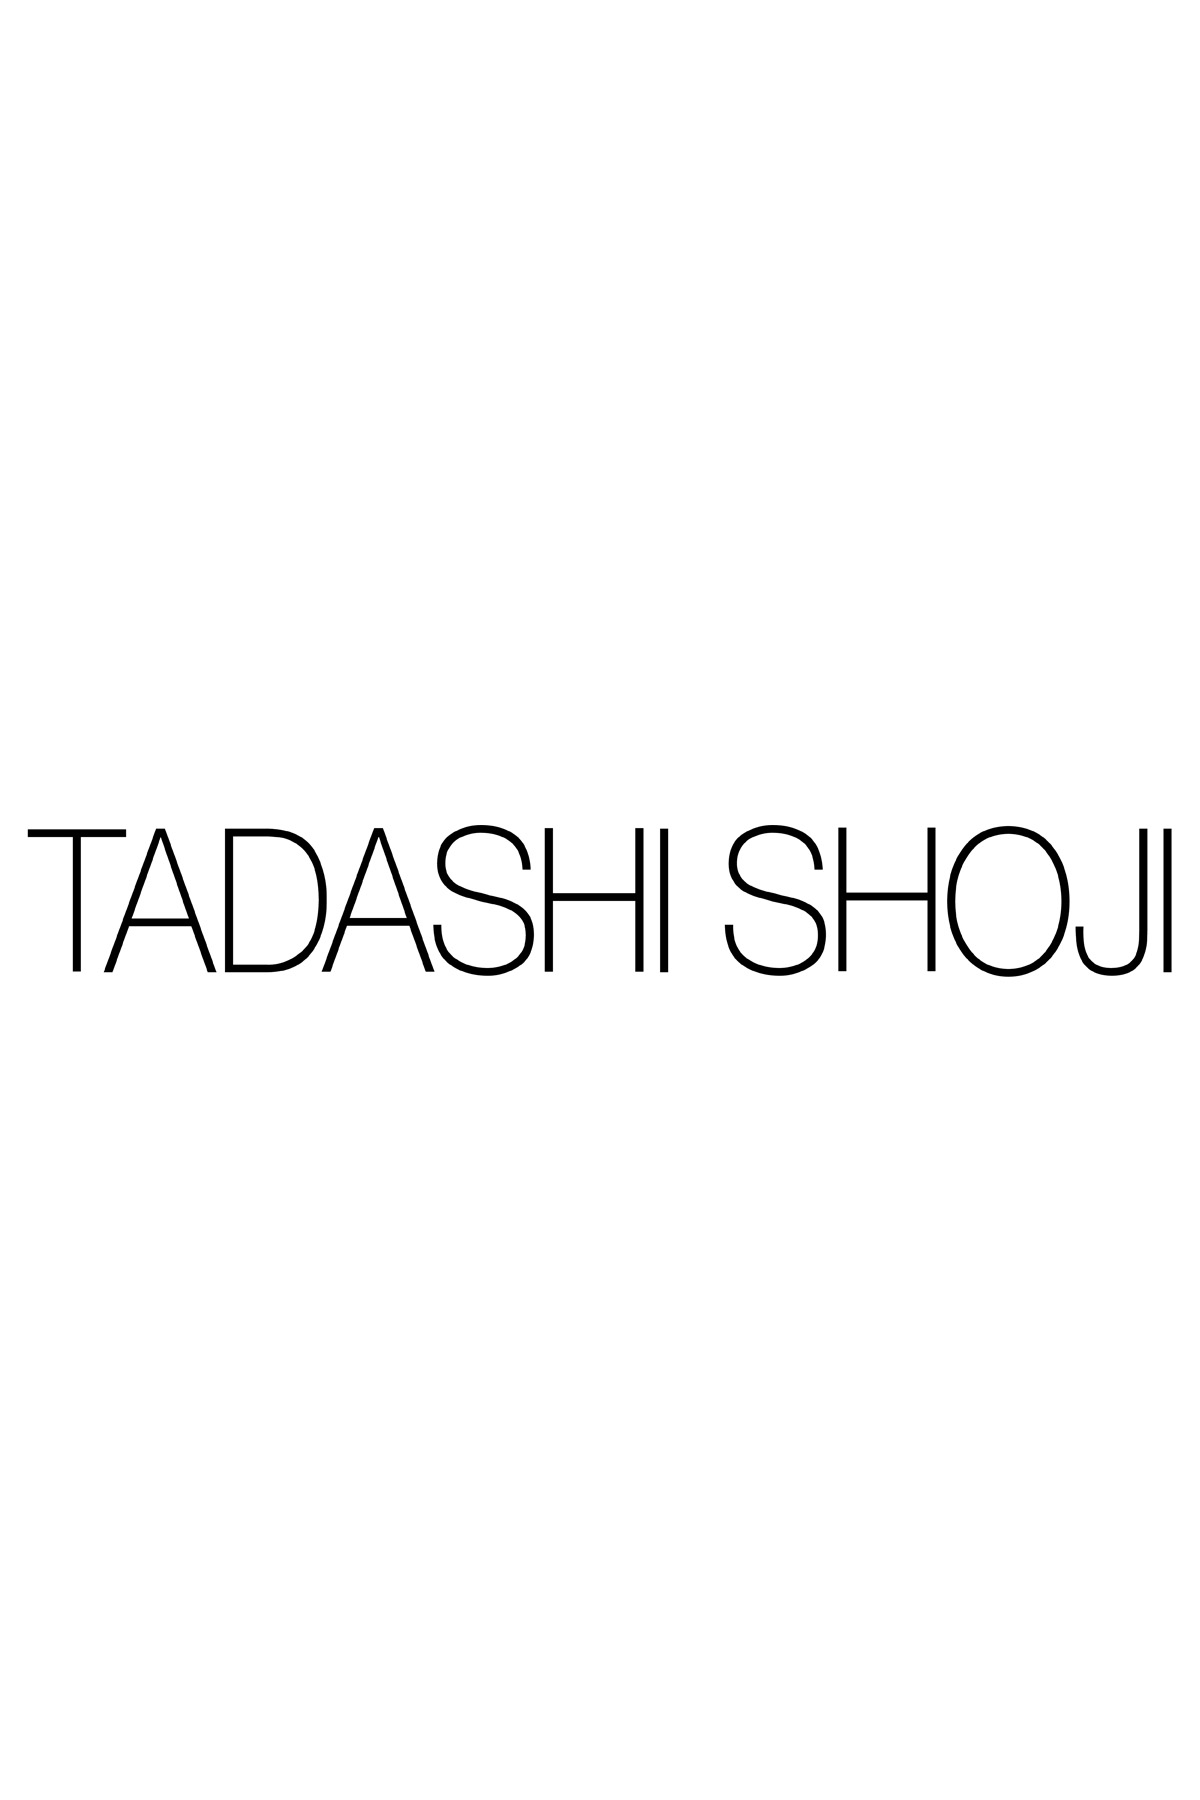 Tadashi Shoji Plus Size Detail - Corded Embroidery on Tulle Cap Sleeve Dress